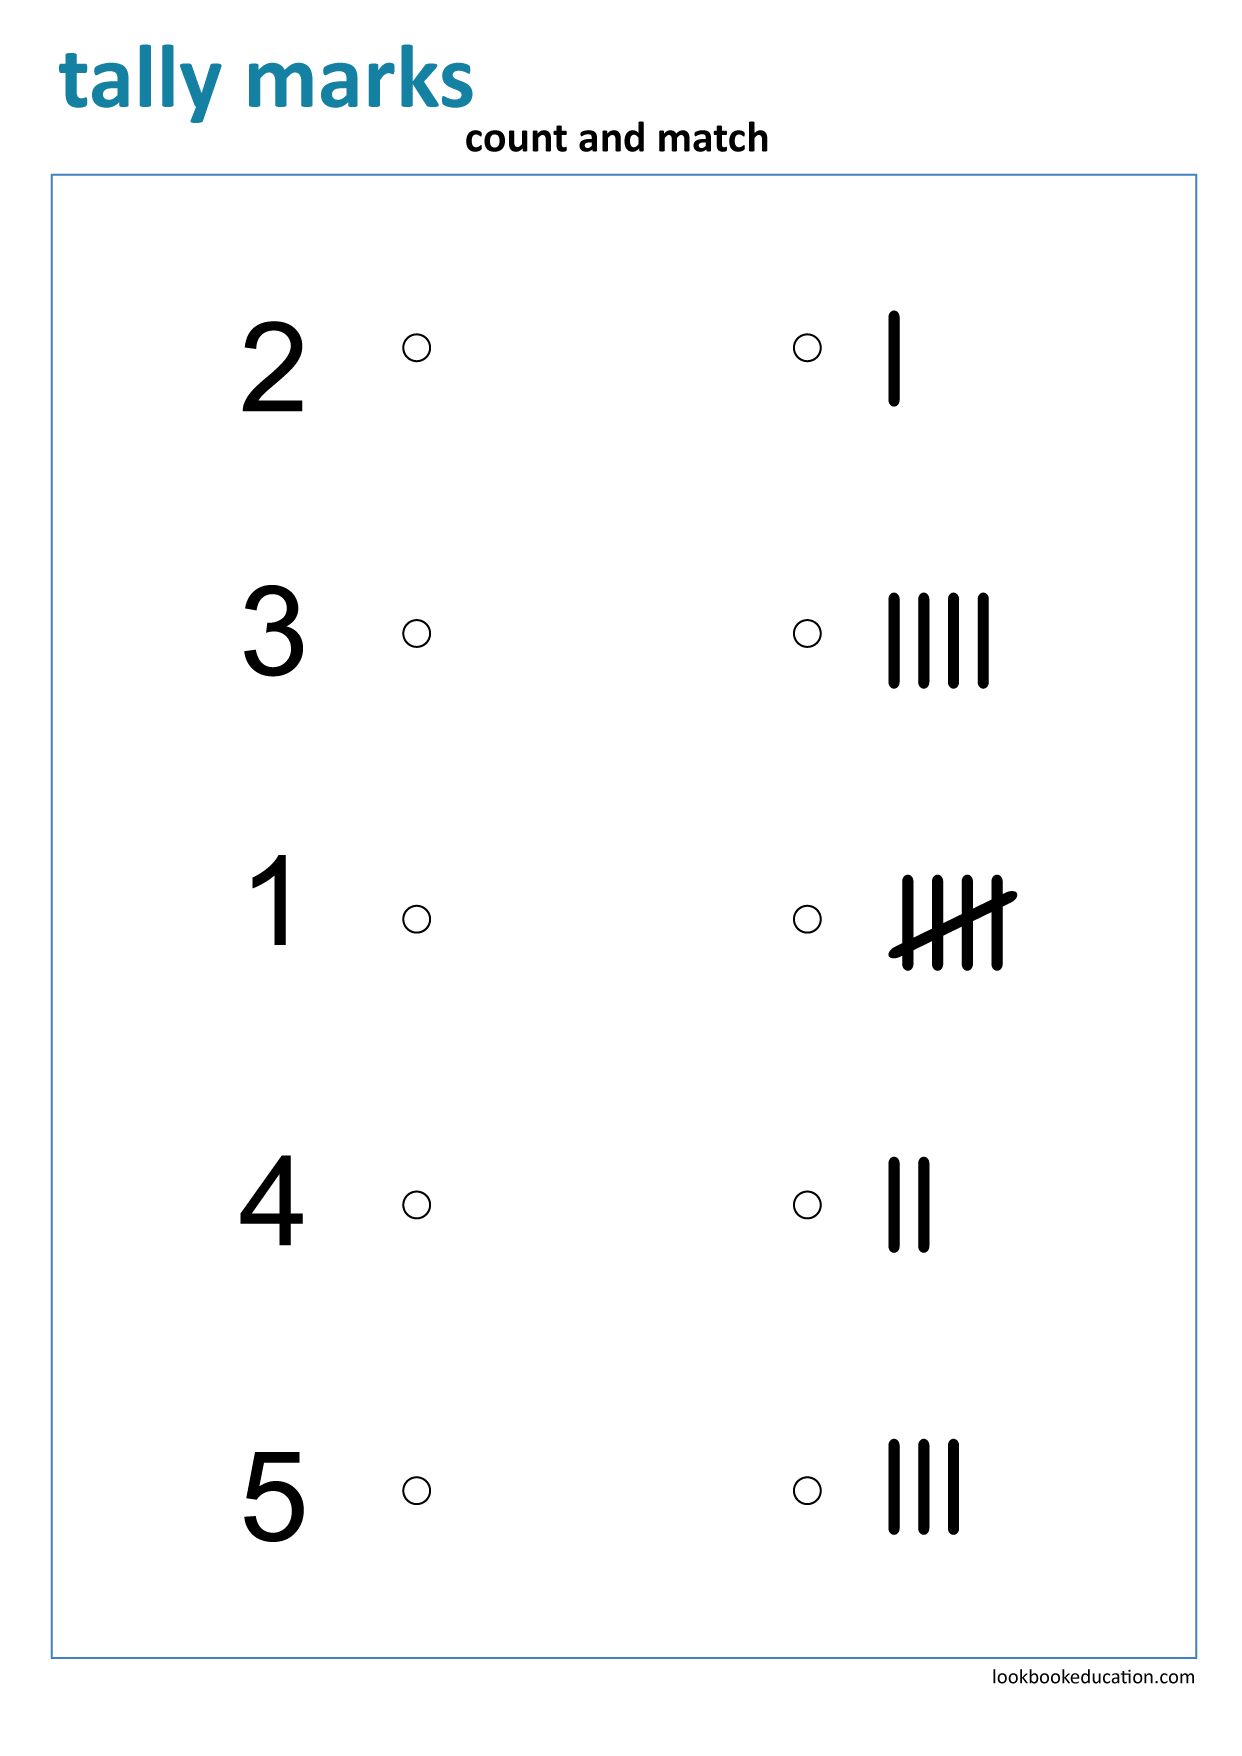 Worksheet Matching Tally Marks